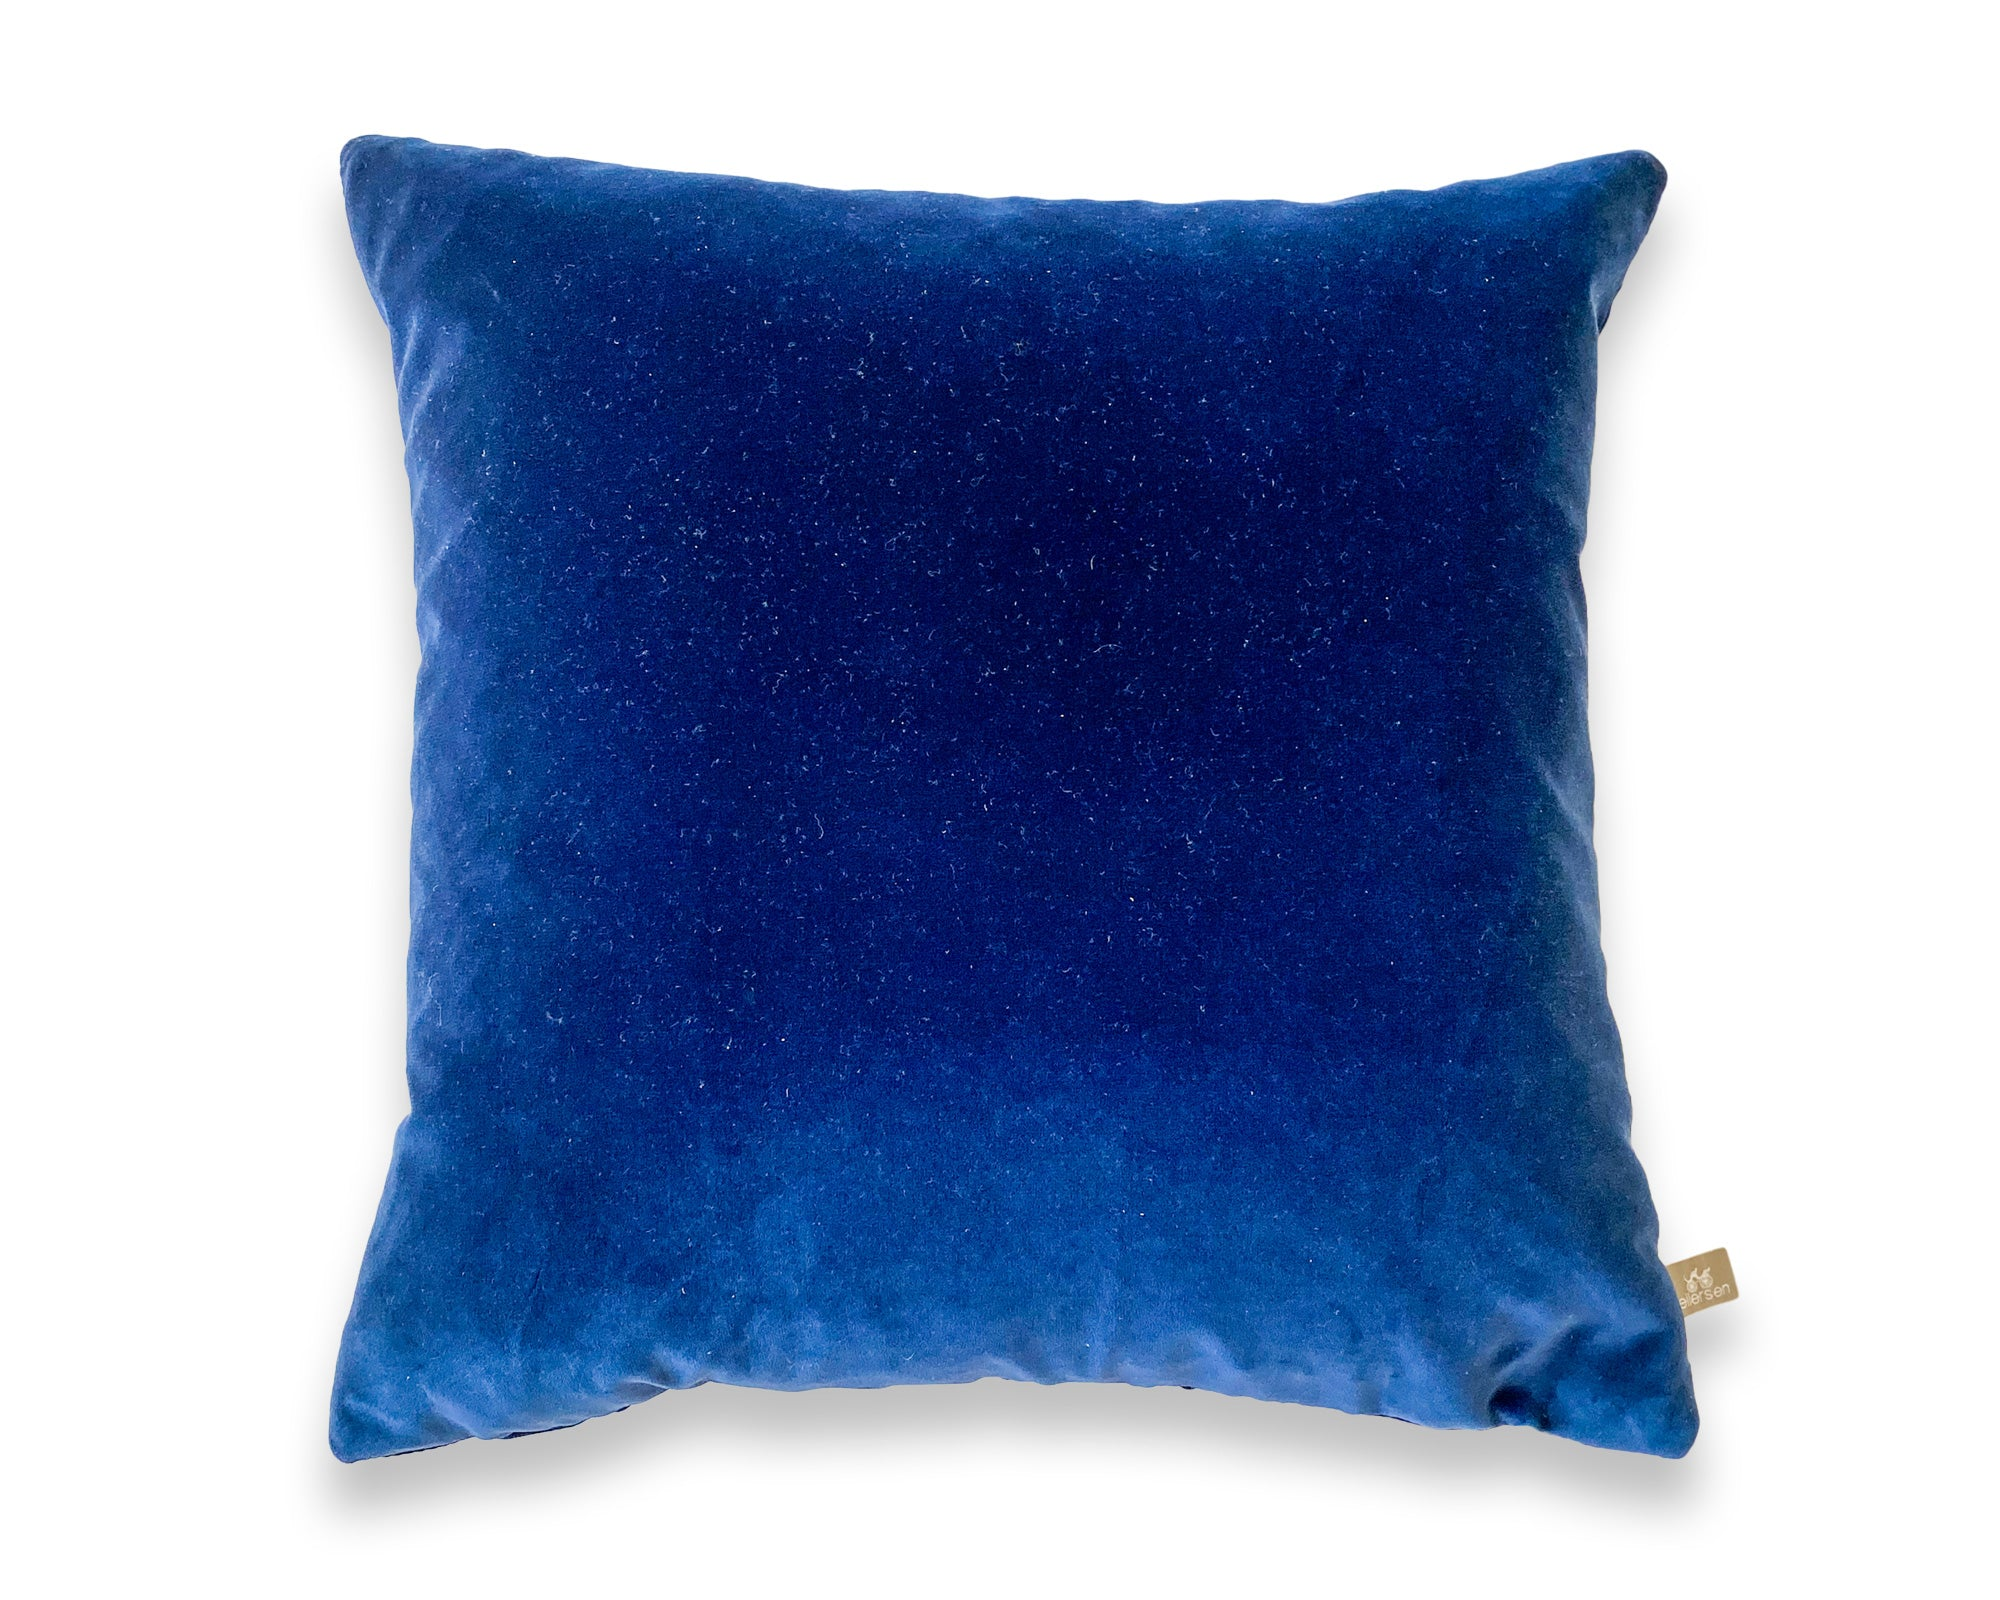 Square Royal Blue Pillow